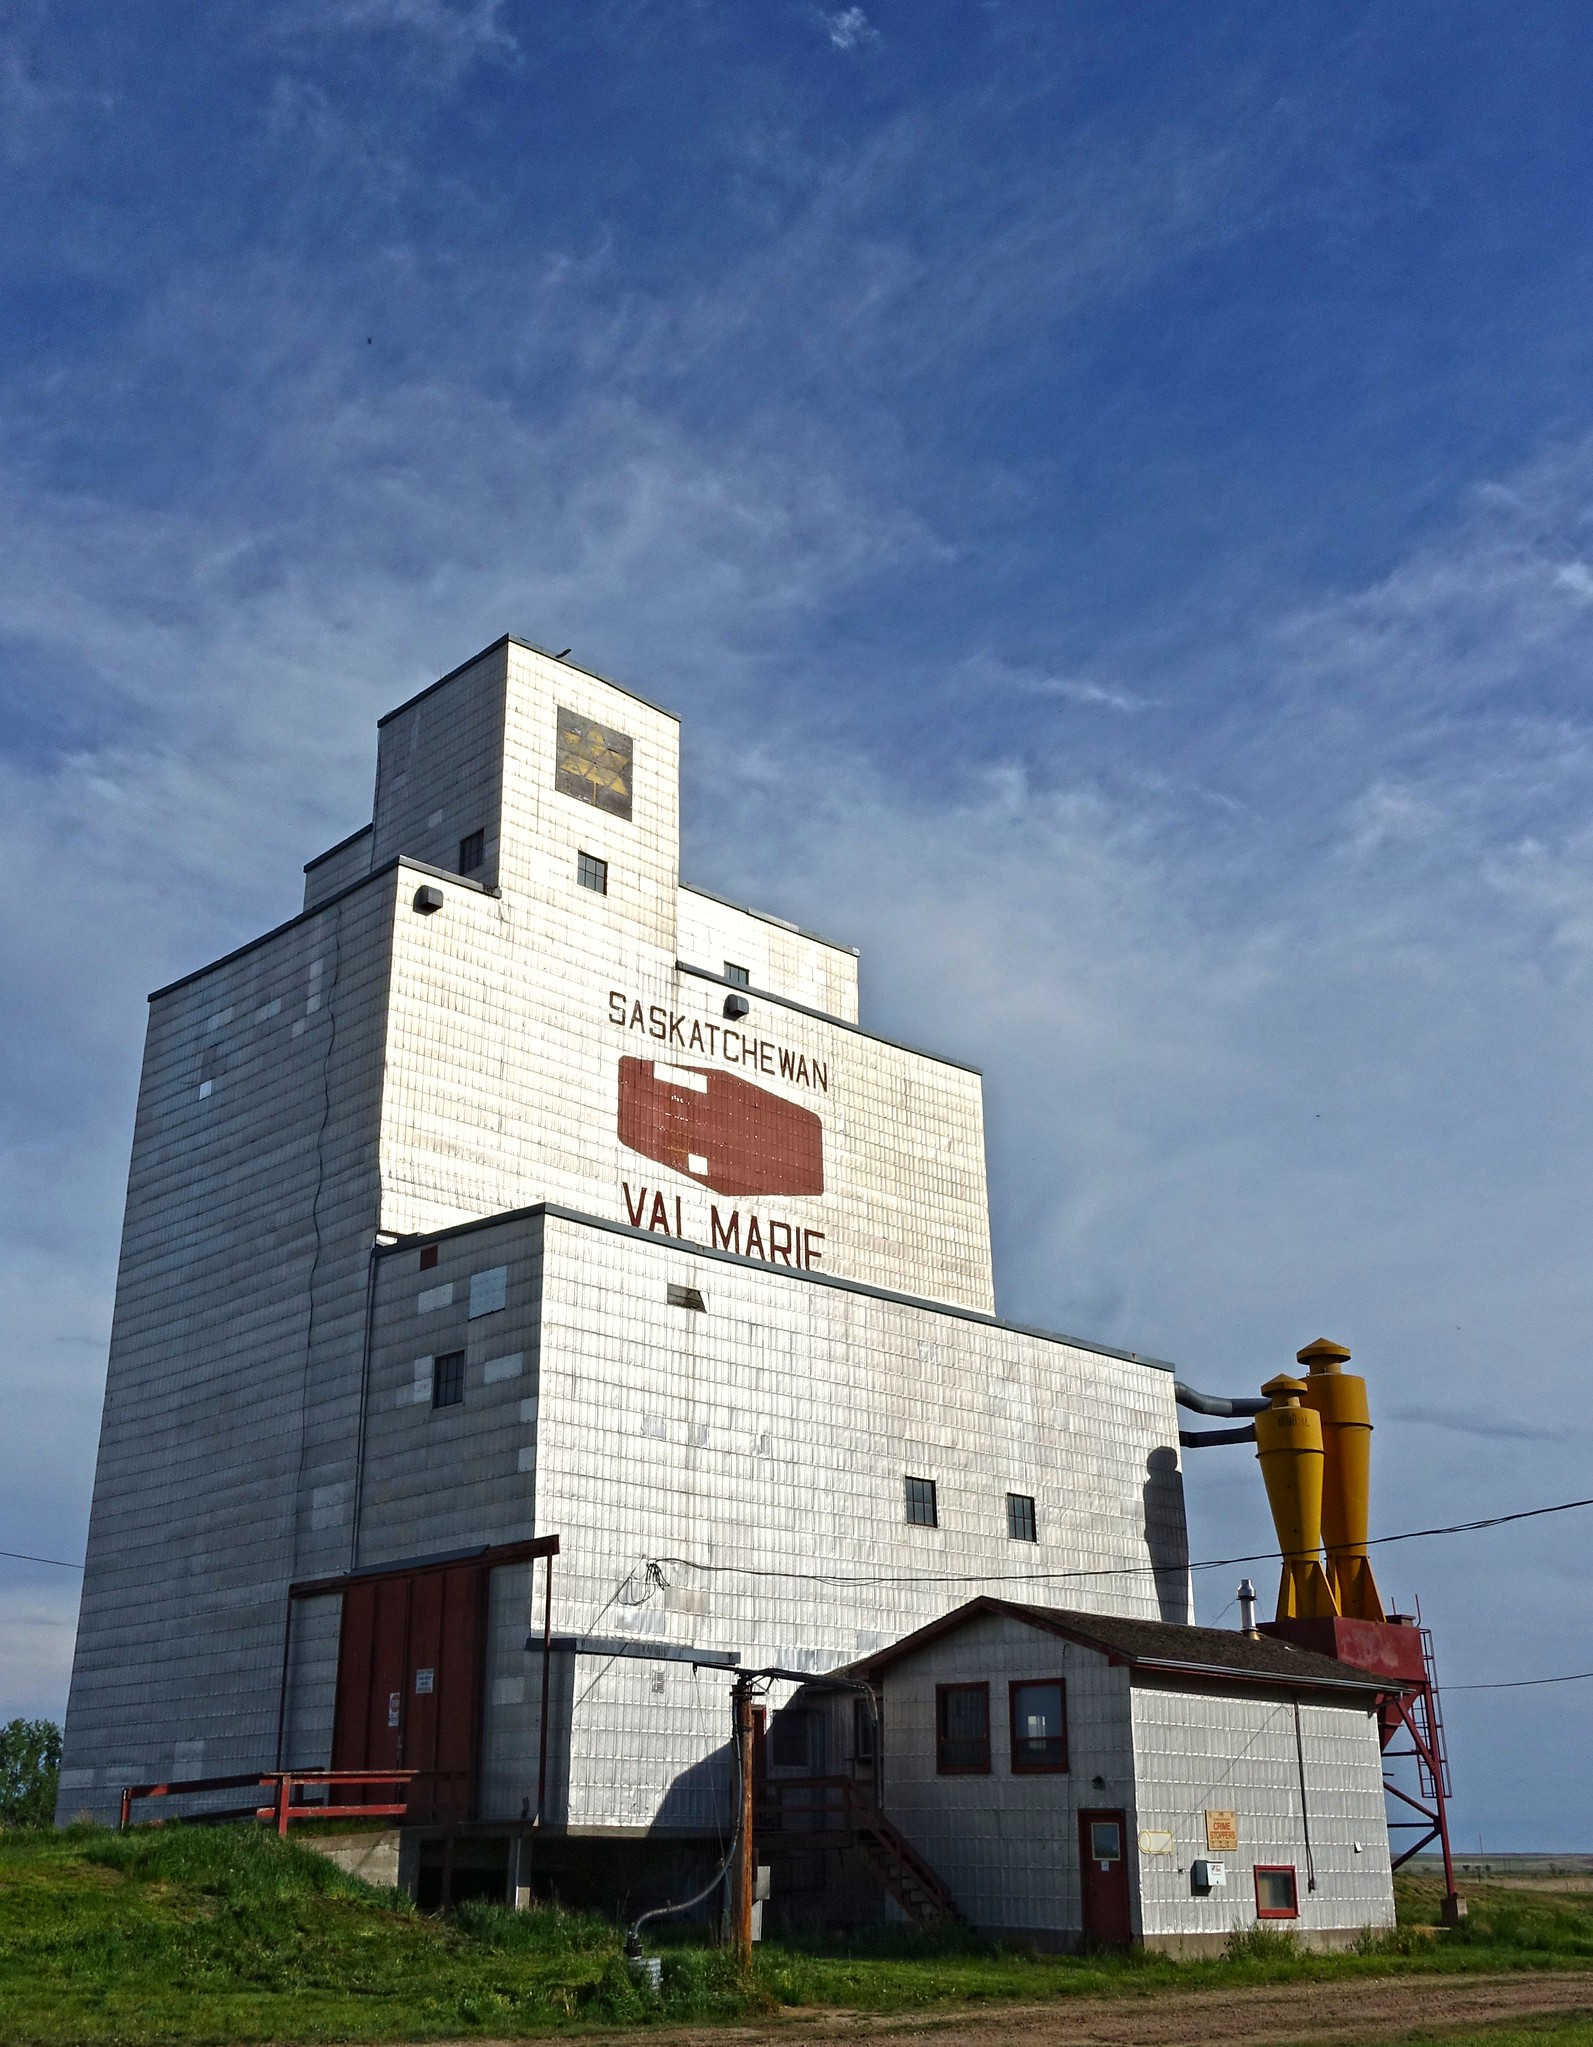 Val Marie, SK | Walking Tour